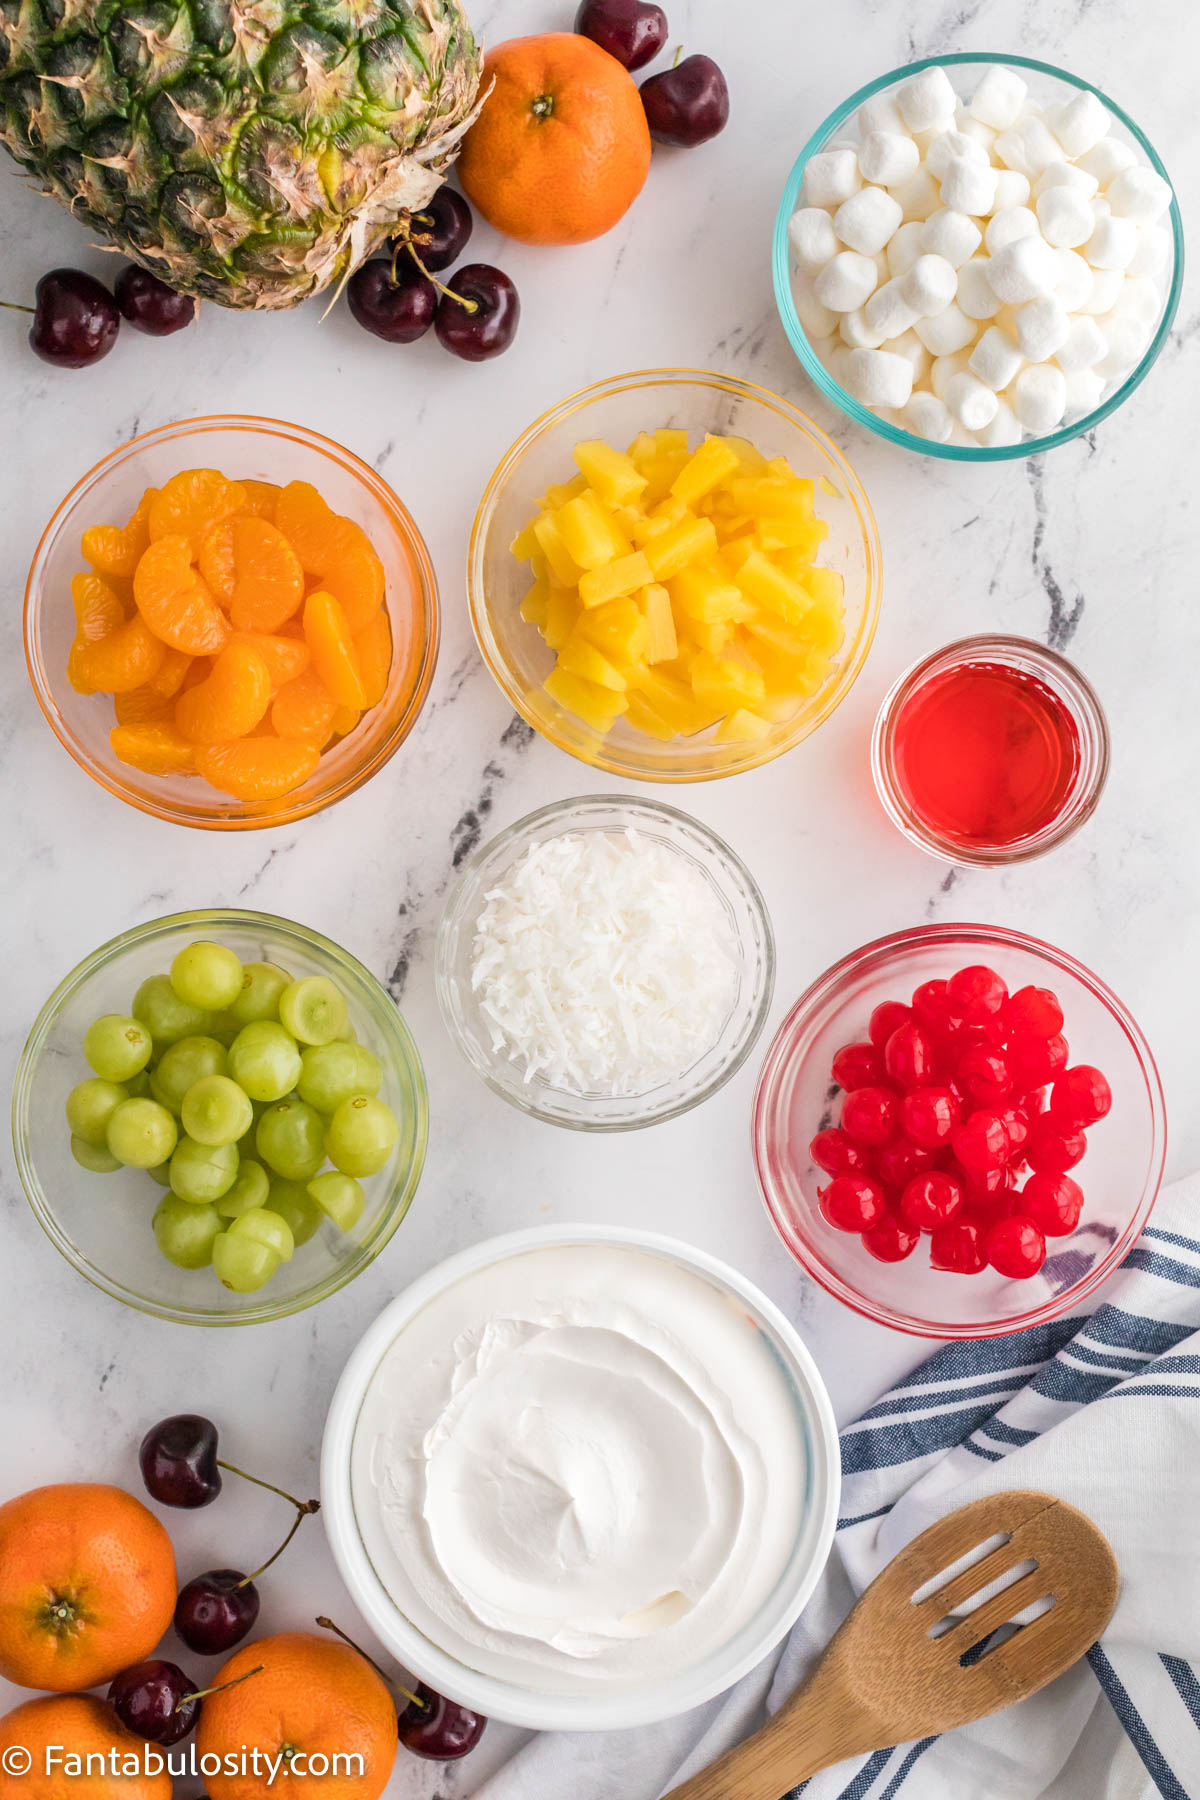 Ingredients for fruit salad with cool whip